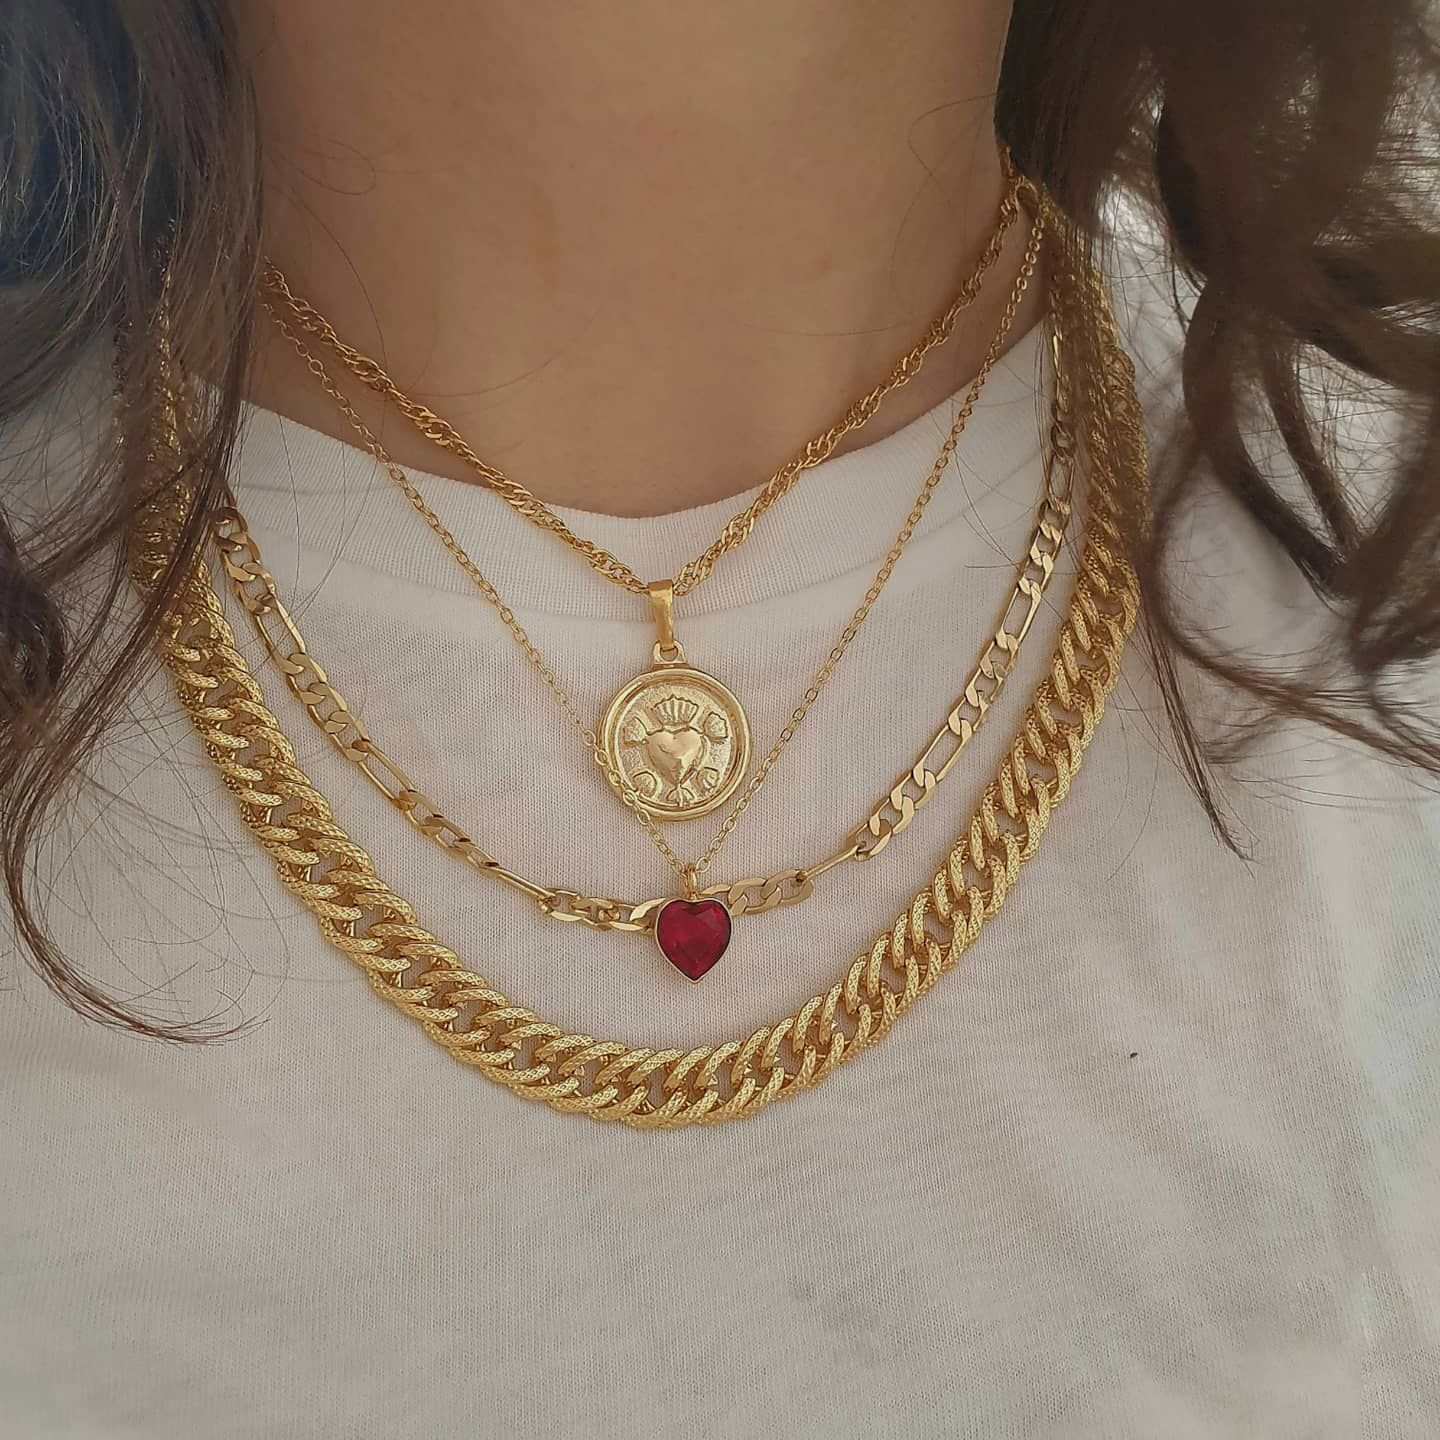 3-1 necklace gold necklace sun necklace Layered Necklace SUN Necklaces Personalized Necklace Birthday Gift for Her ready to ship gift